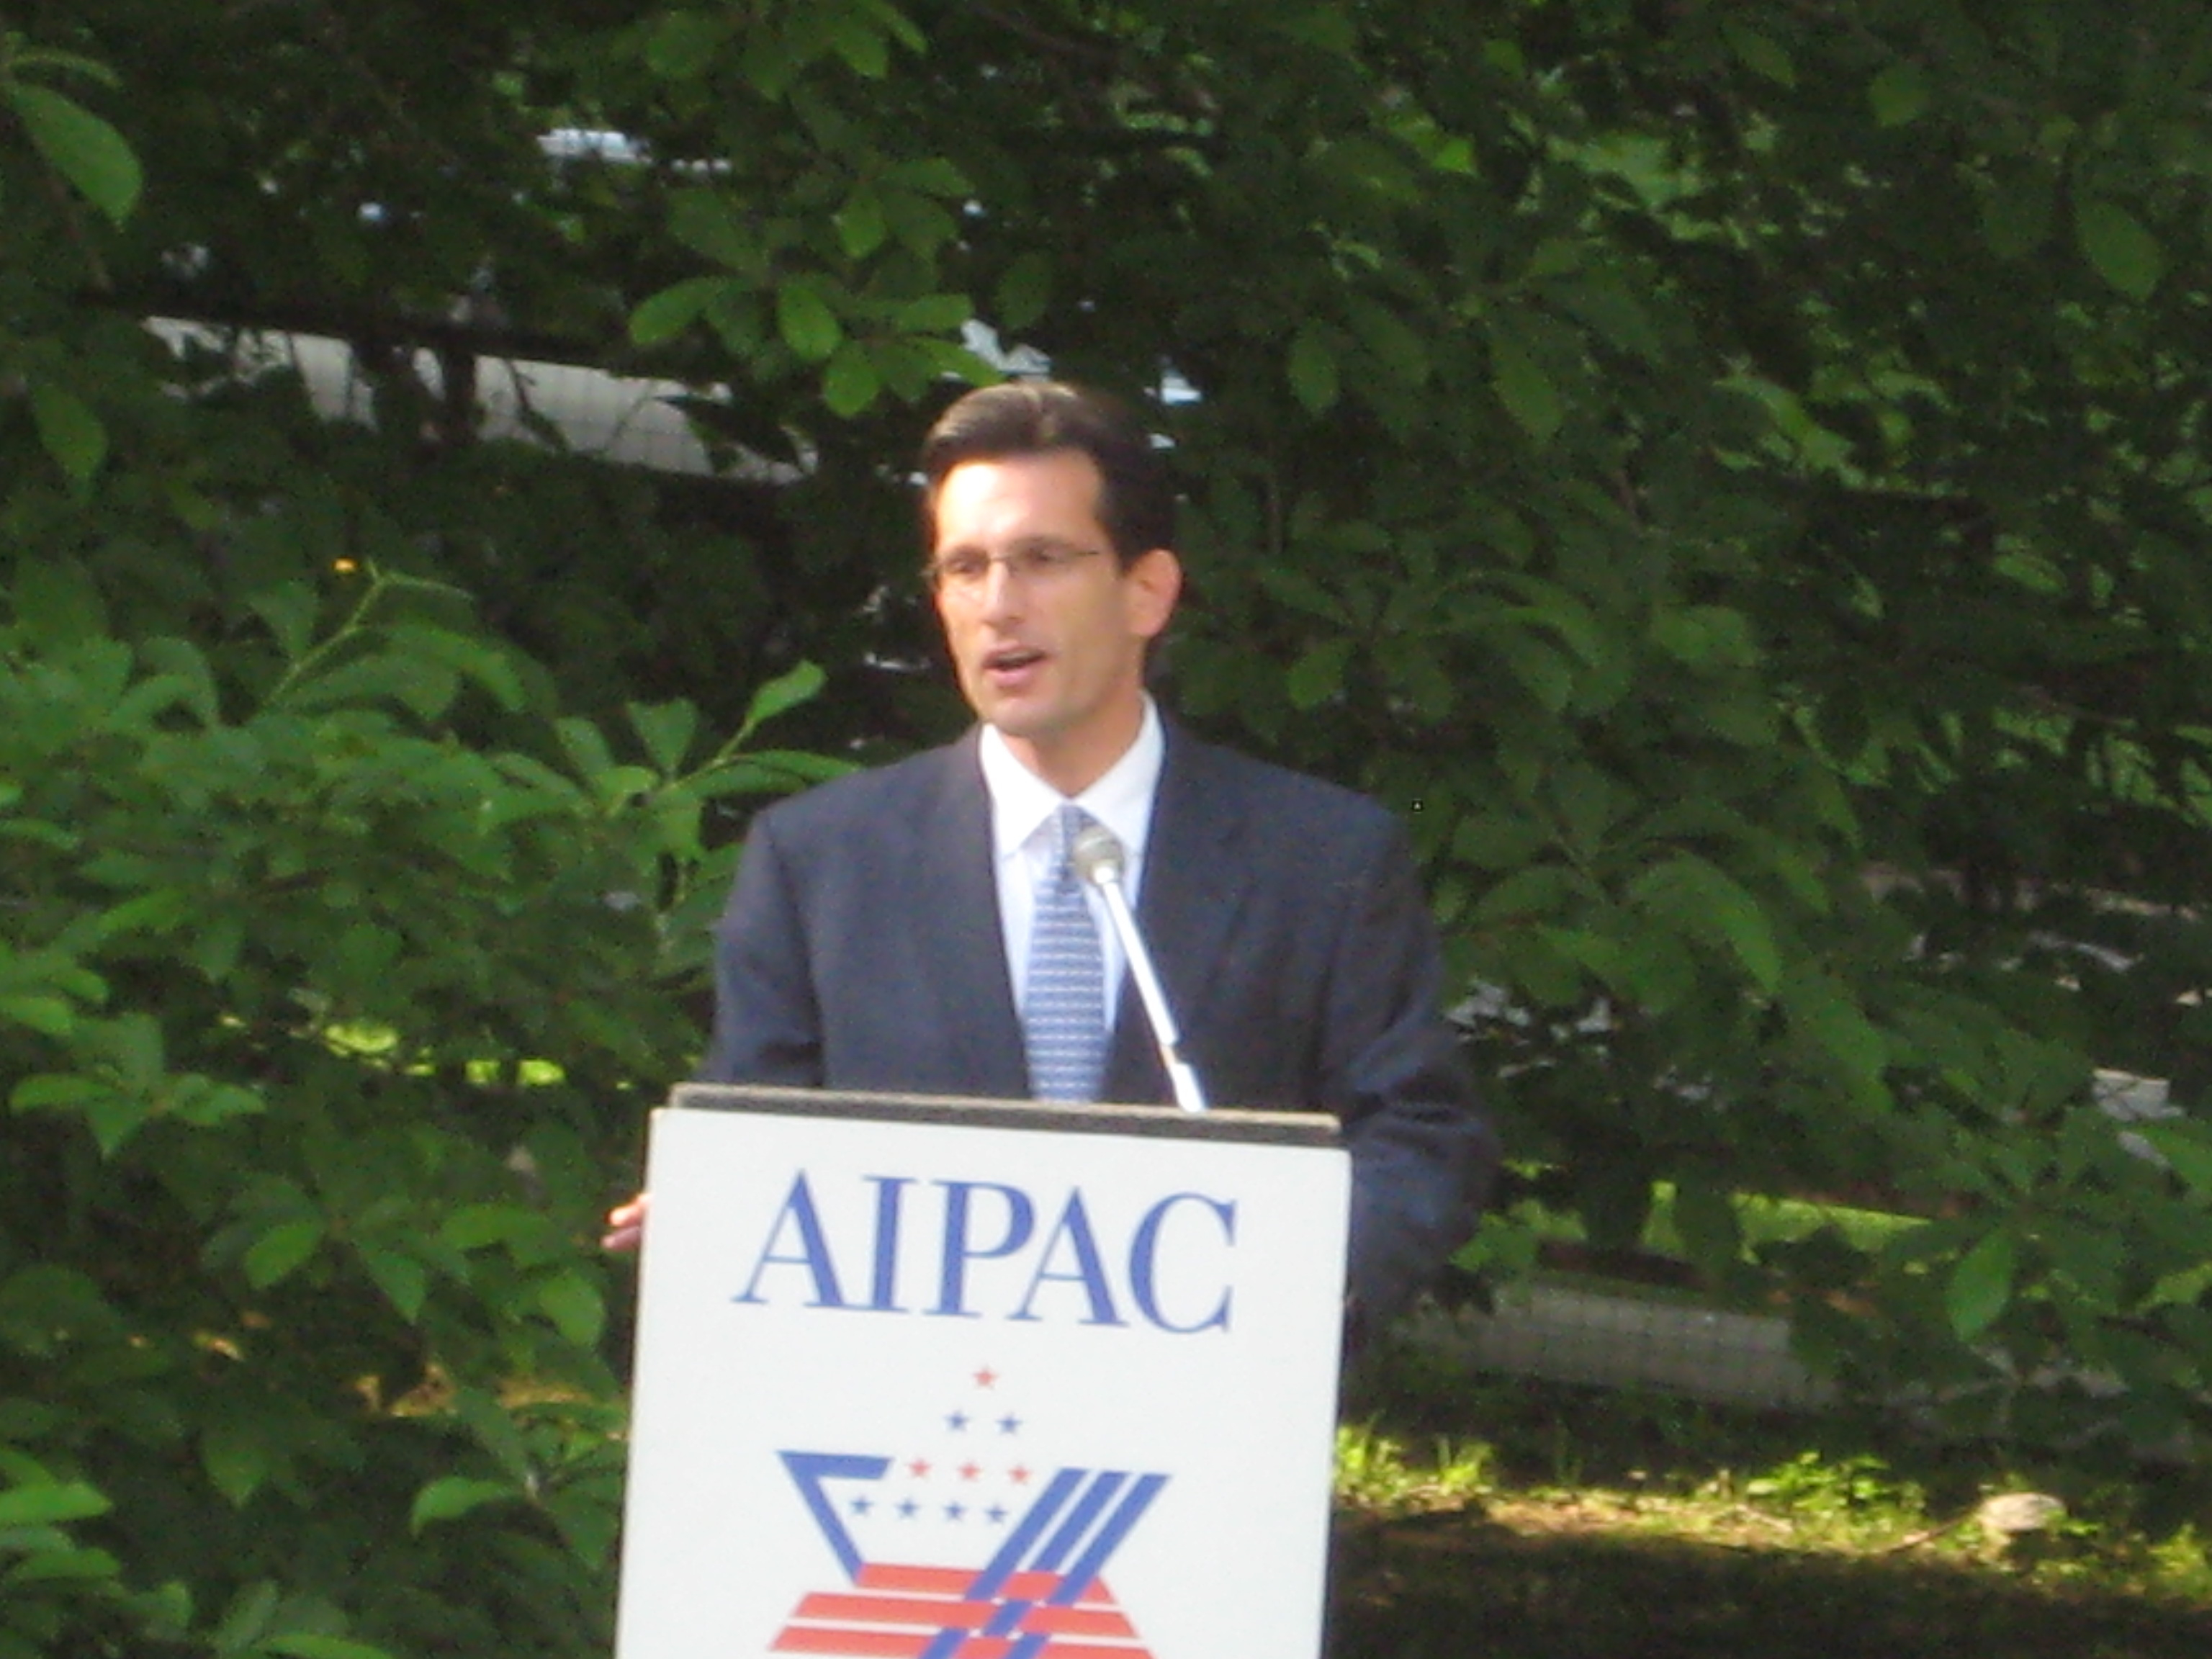 Eric Cantor appears for AIPAC in New Jersey, June 2009. (Photo by Ken Kurson)